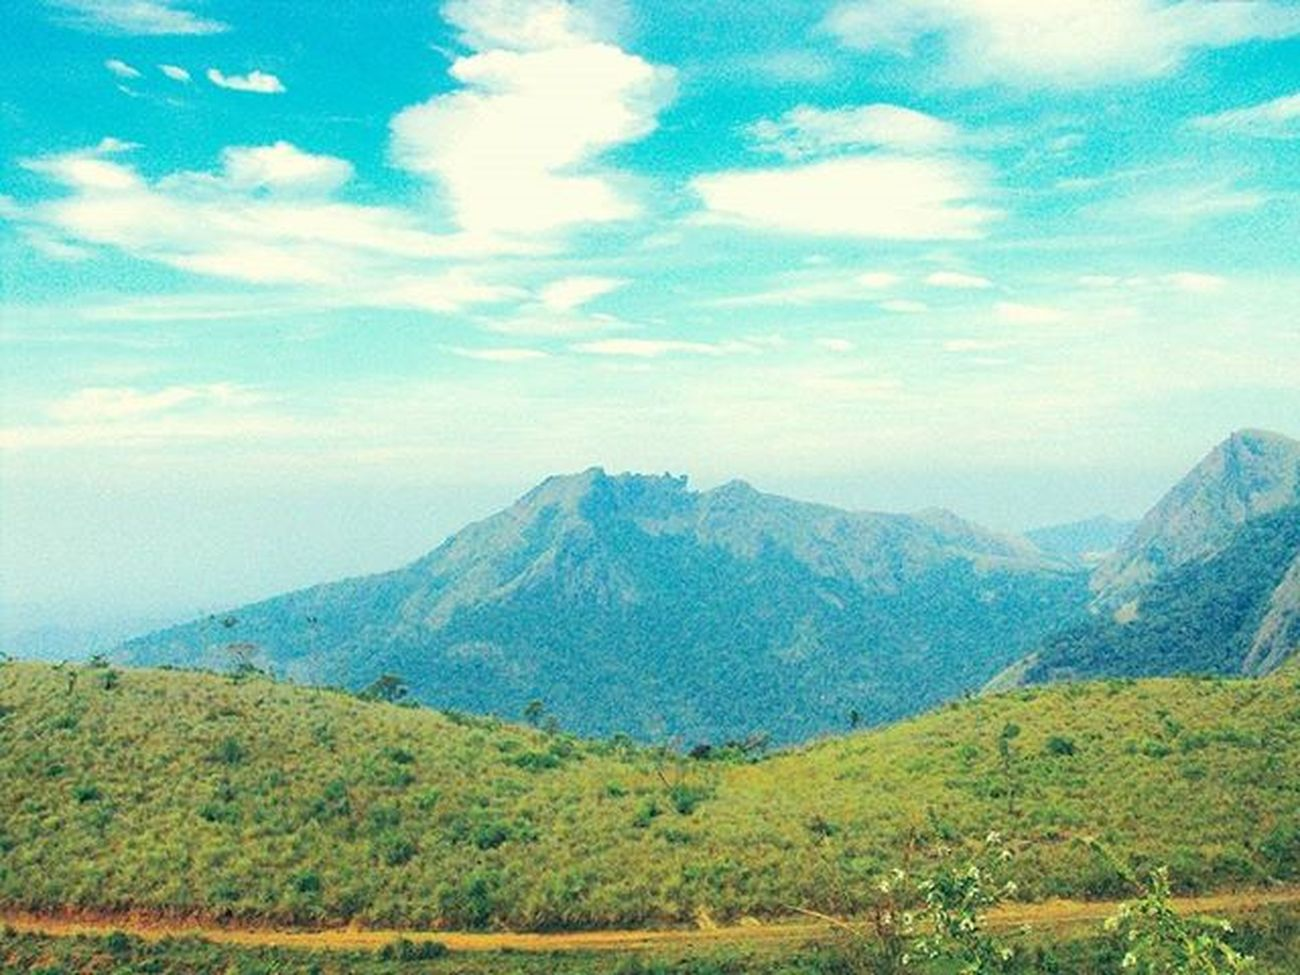 Beautiful view!!!😍😍😍 Vagamon Awesome View Beautiful Scenery Love Travel Amazing Place Best  Trip Kottayam Kerala GodsOwnCountry India Good Day Morning Trekking Bike Ride Nature Green Grass Blue sky white clouds friends memories